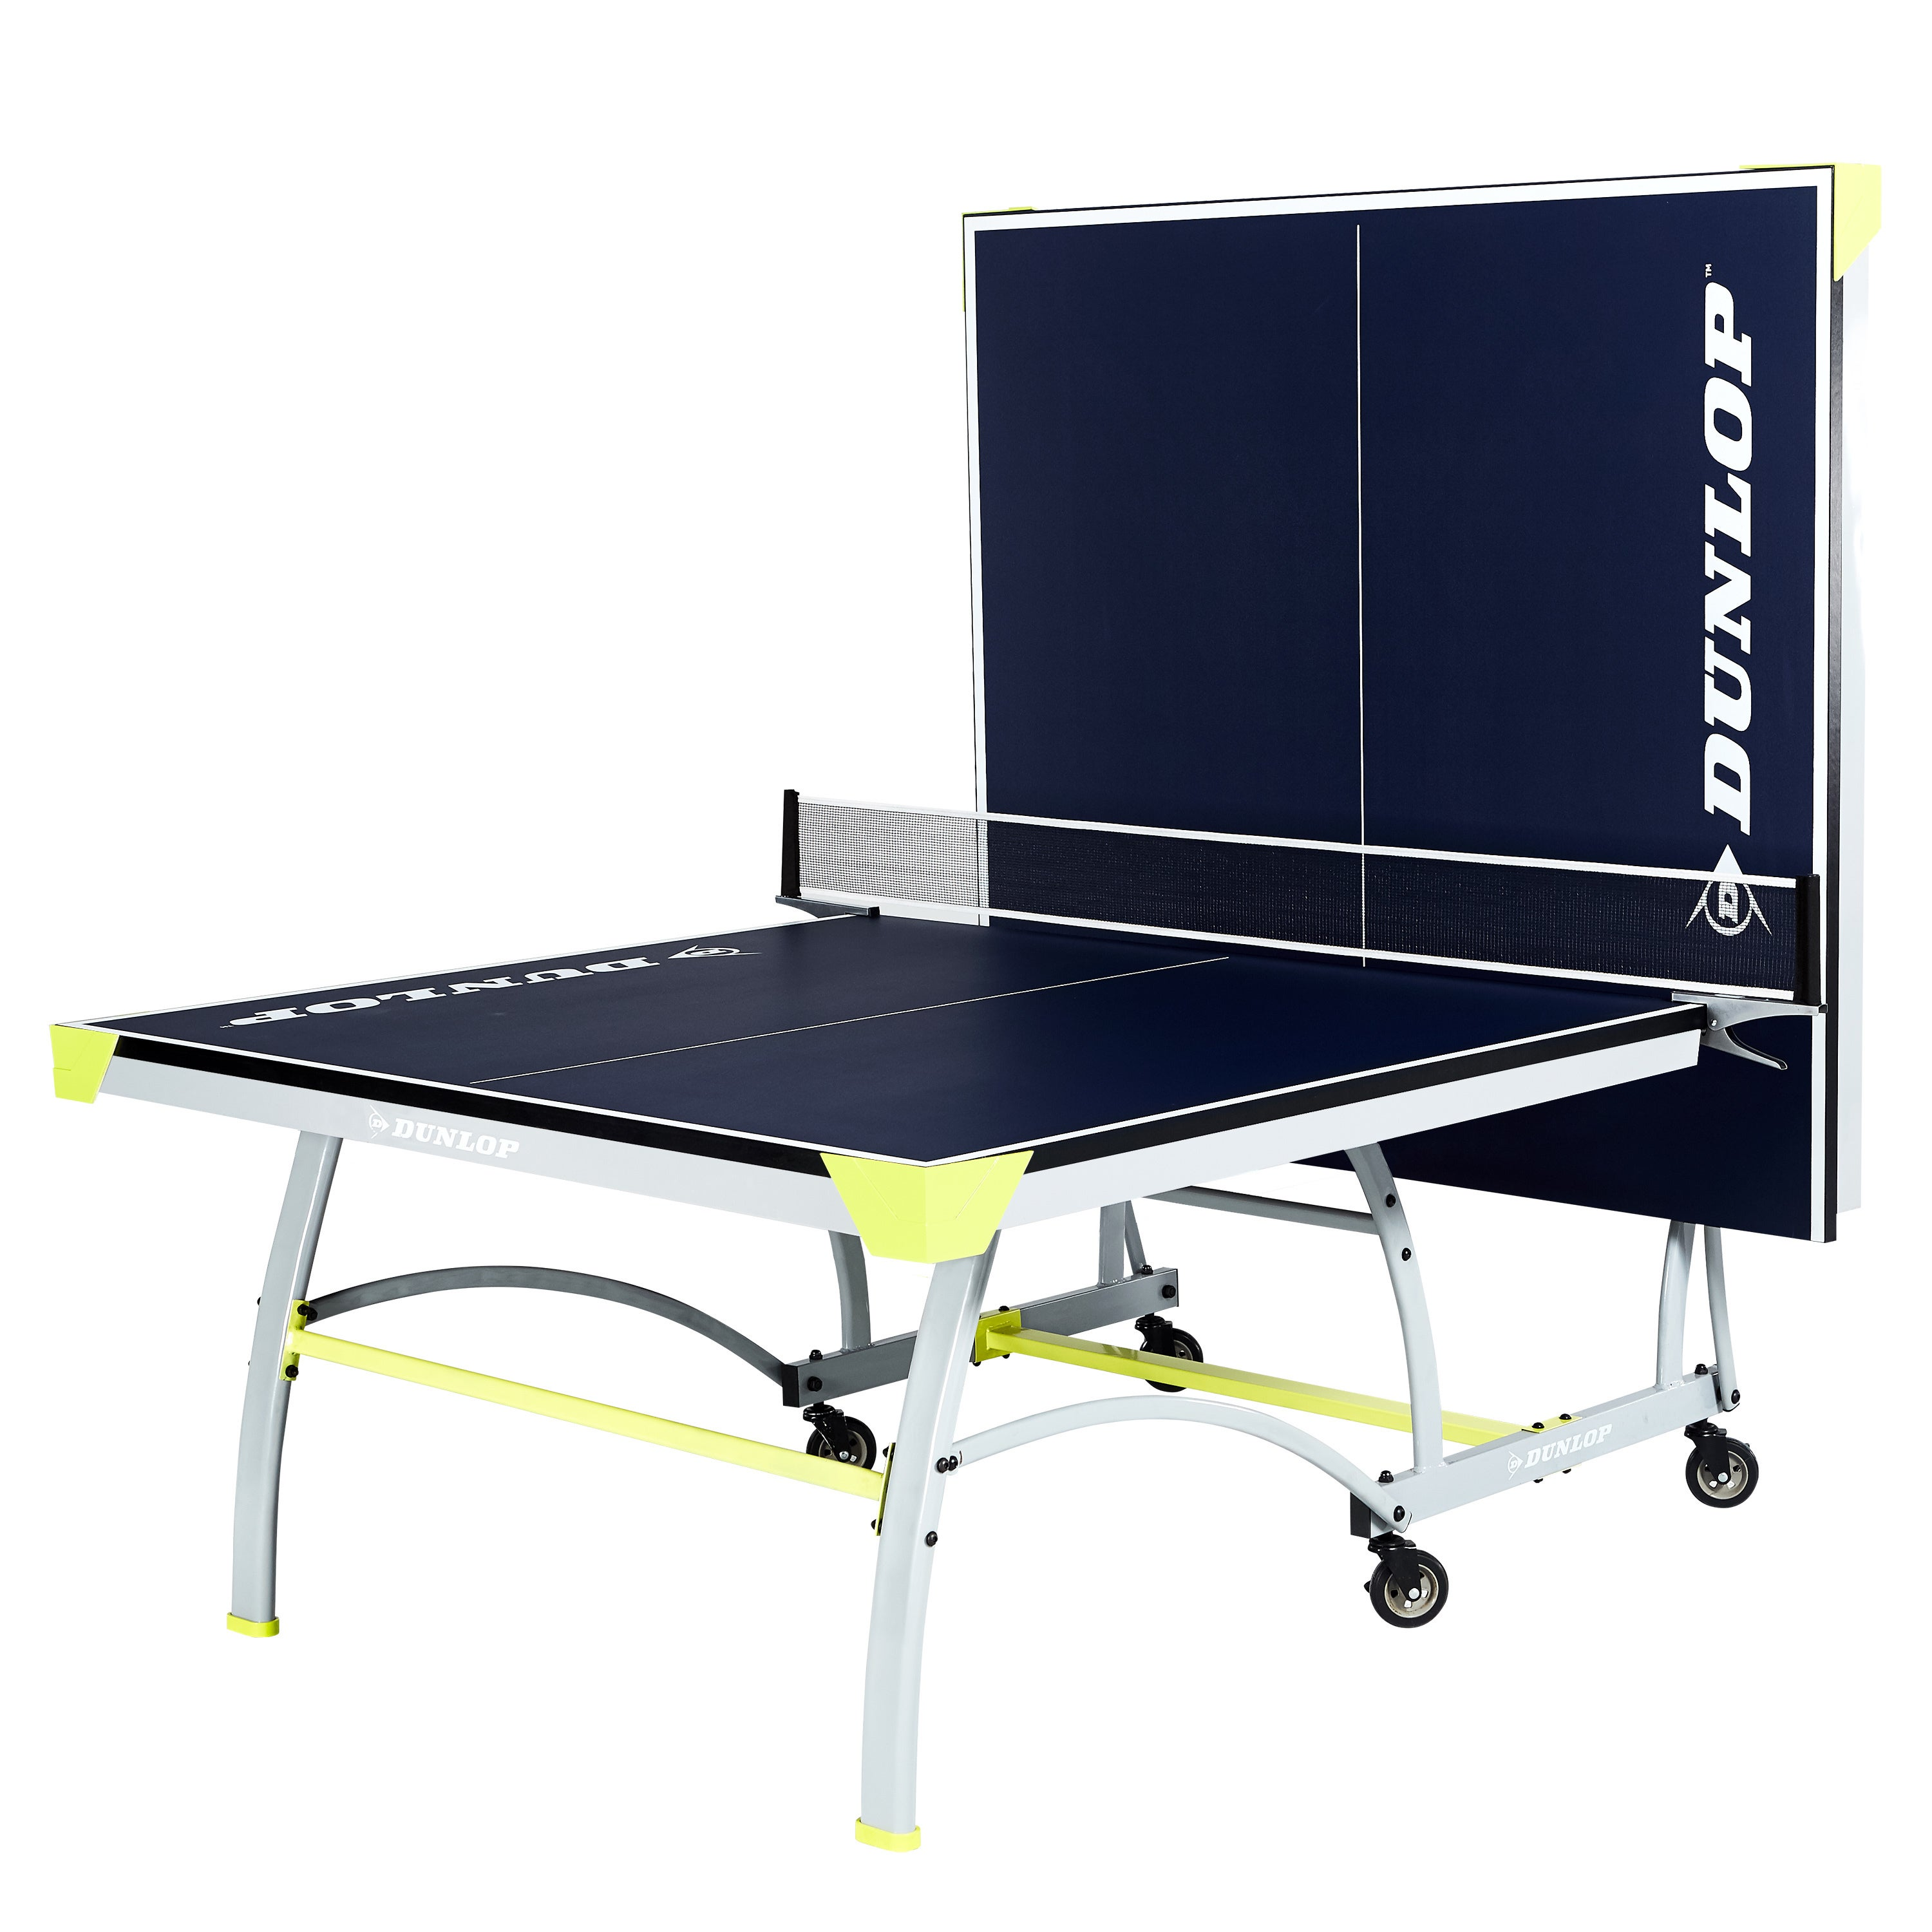 Shop Dunlop Blue Wood 18 Millimeter 2 Piece Table Tennis   Free Shipping  Today   Overstock.com   12676127